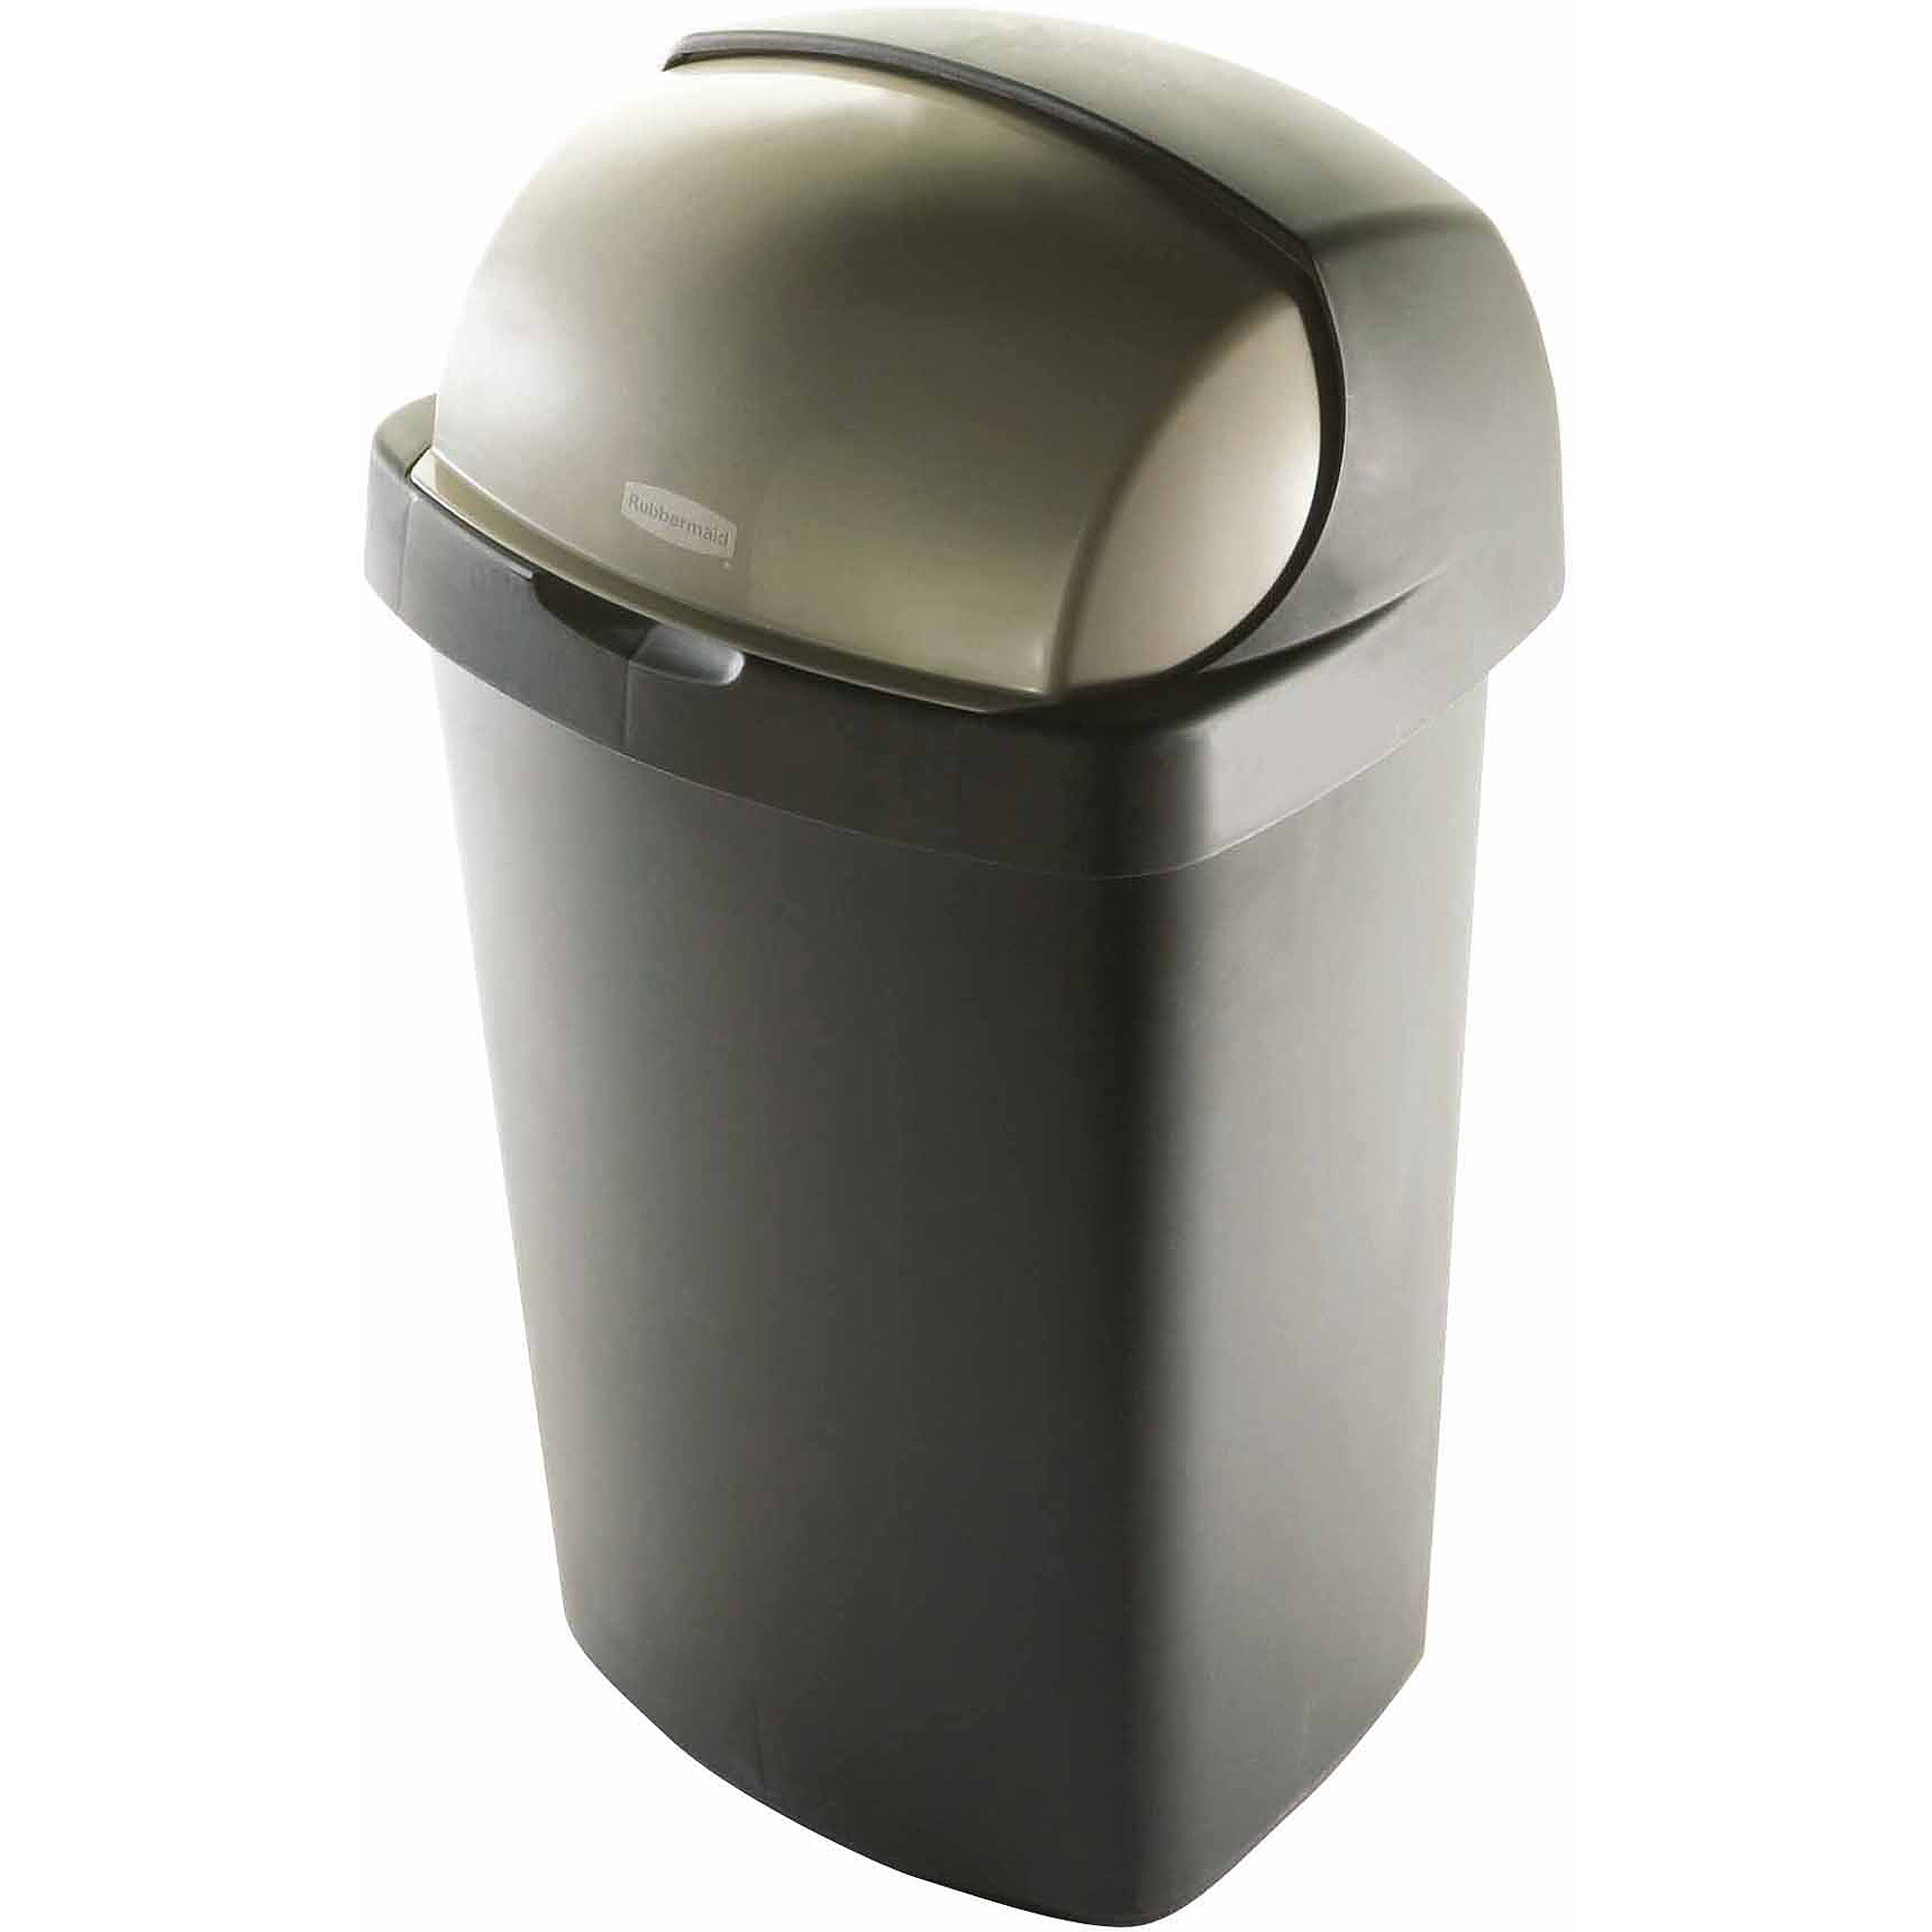 Rubbermaid 13-Gallon Roll Top Wastebasket, Bronze ...